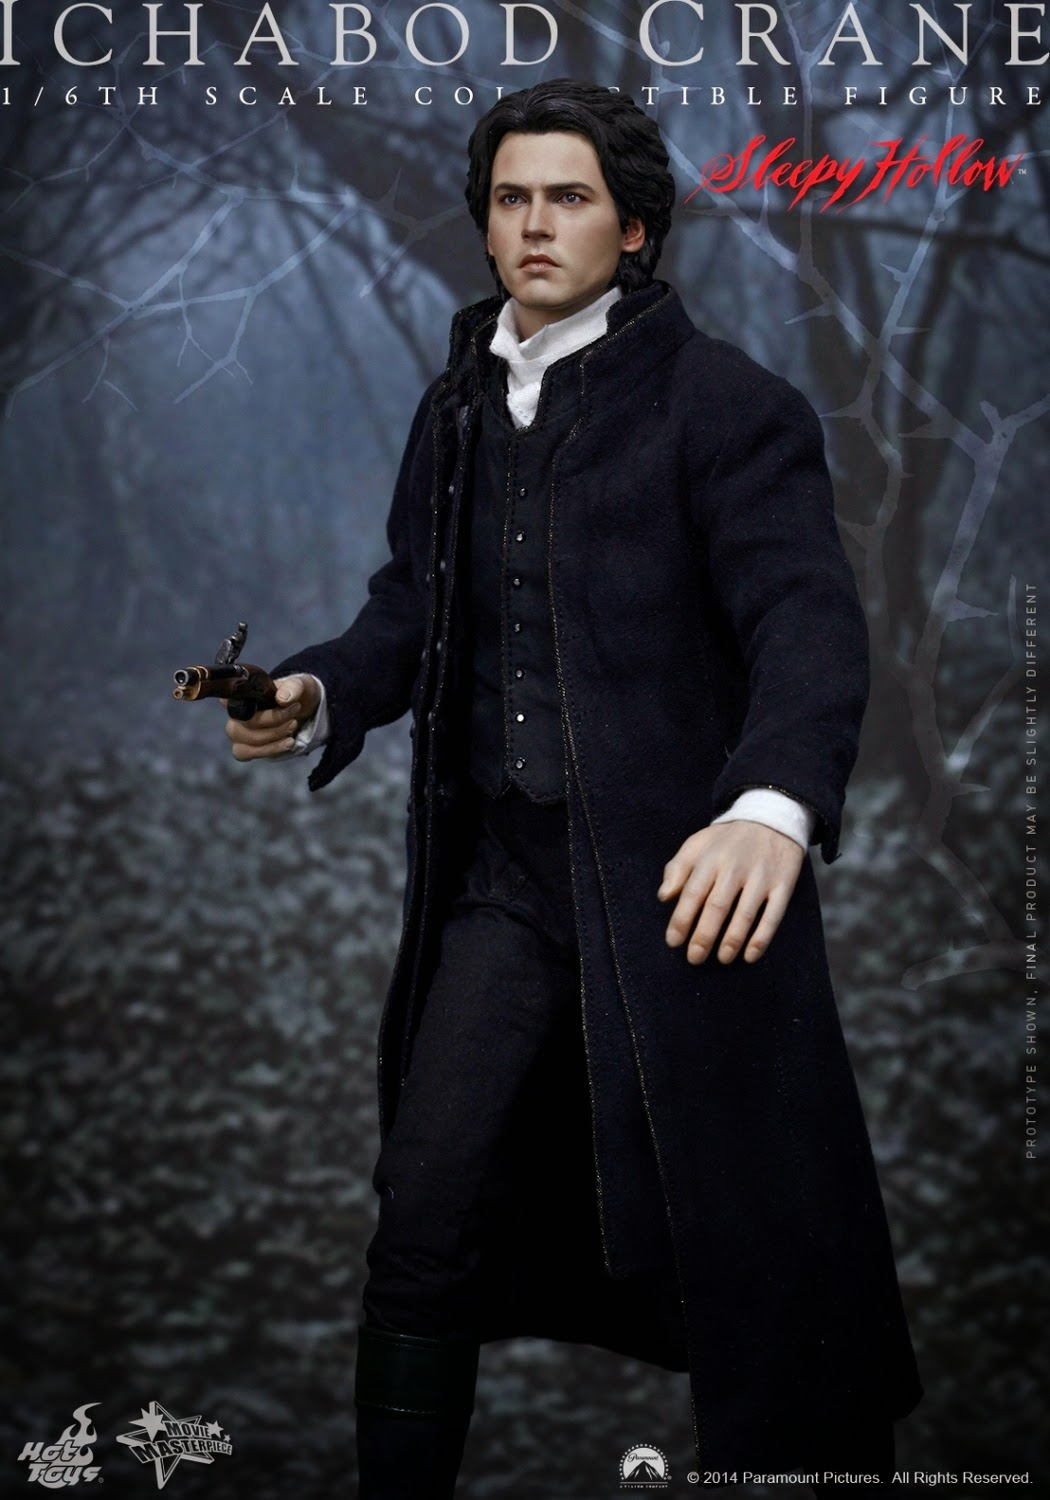 "Hot Toys - MMS - Sleepy Hollow - 1/6 Scale - 12"" Johnny Depp Ichabod Crane figure"